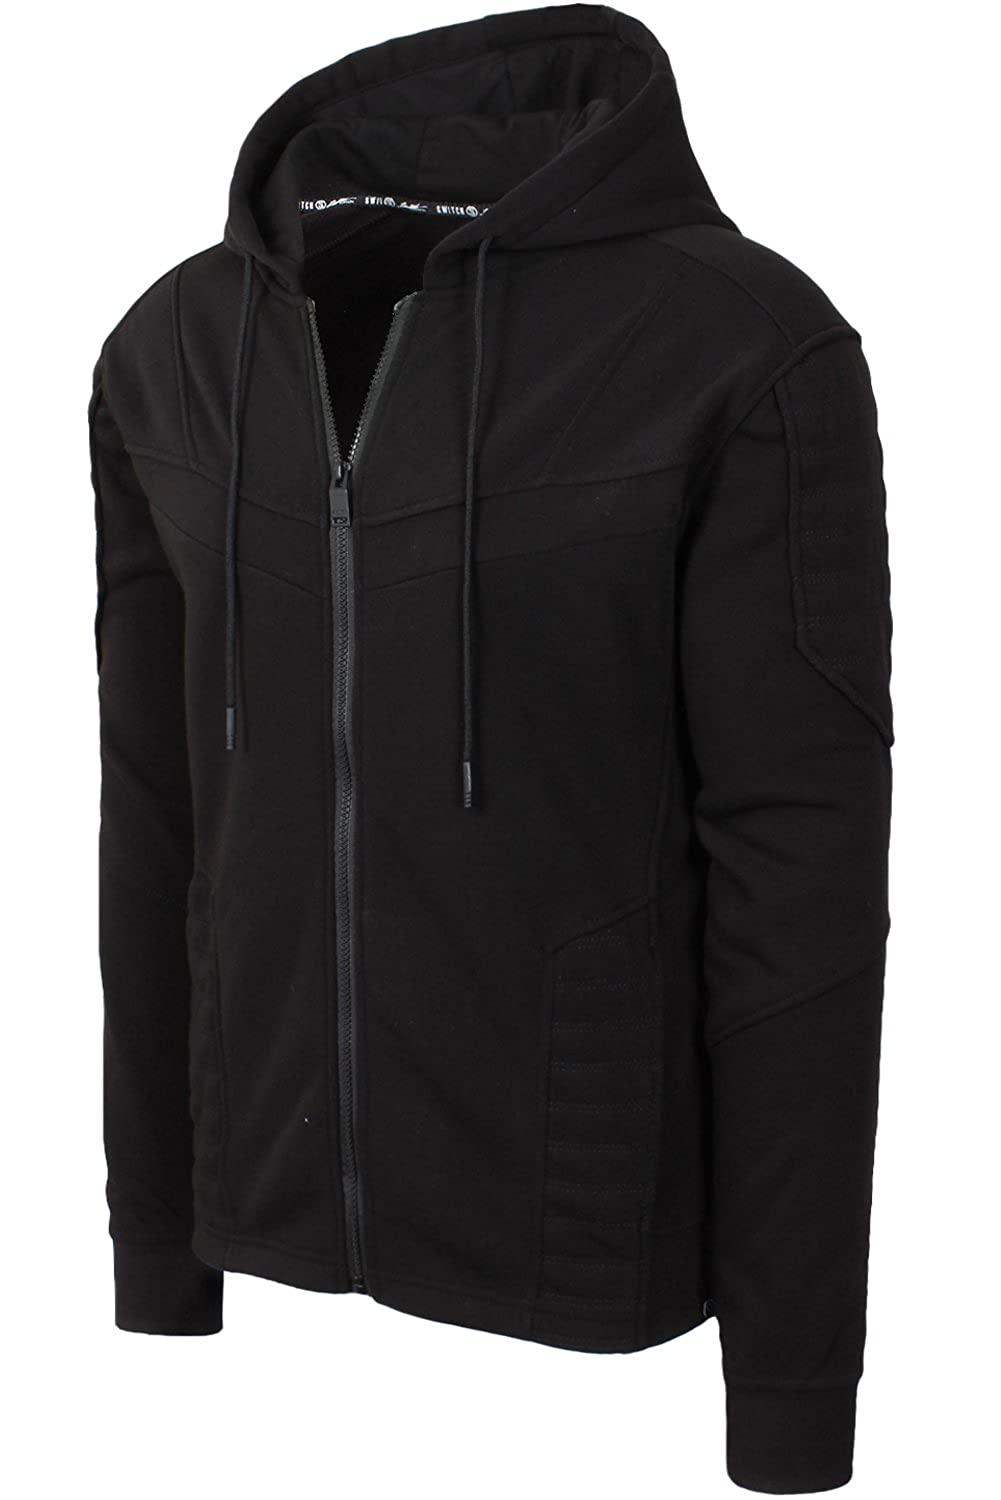 Mho084_black Small JC DISTRO Mens Hipster Hip Hop Quilted Fleece ZipUp Hoodie W Zipper Detail